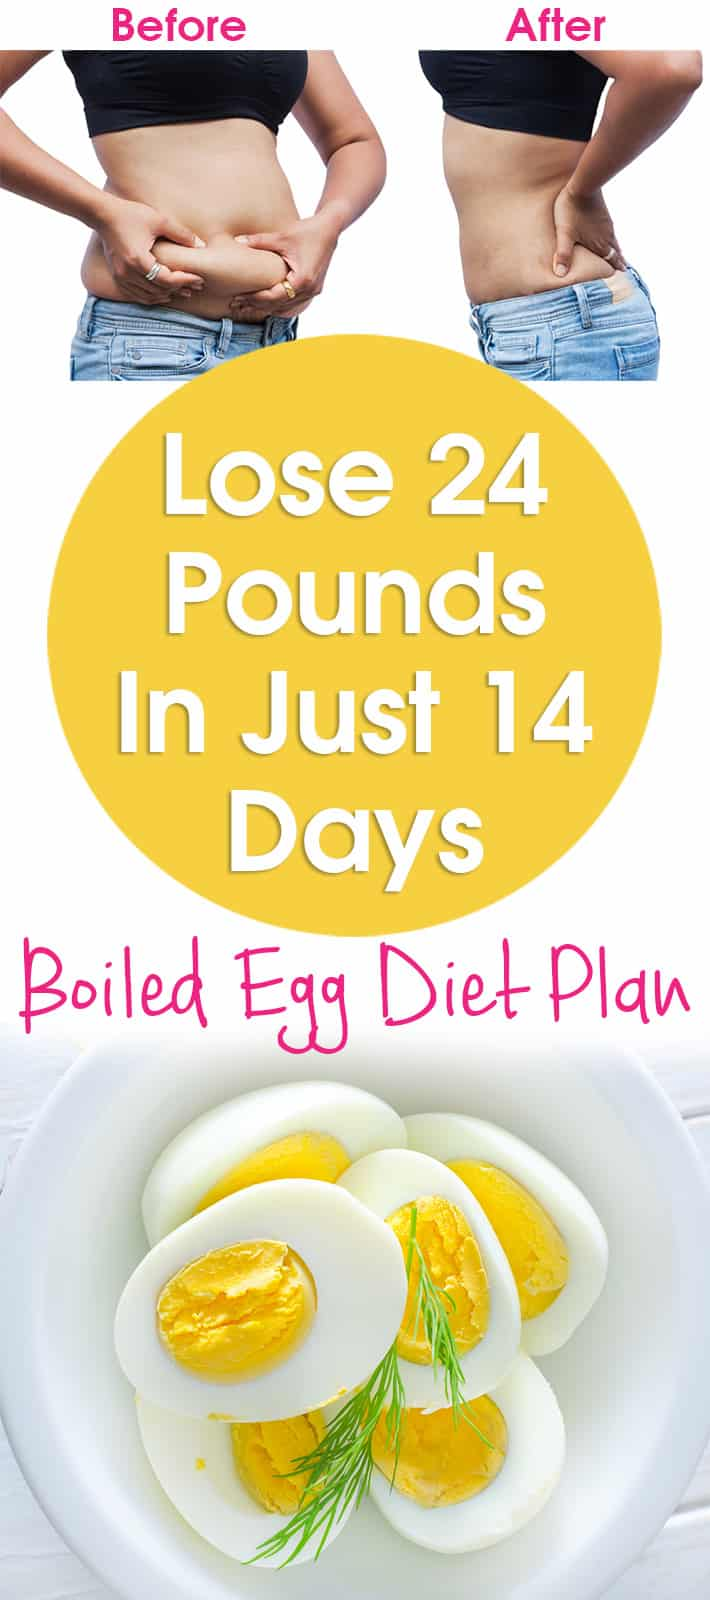 Divine image with regard to 14 day egg diet menu printable